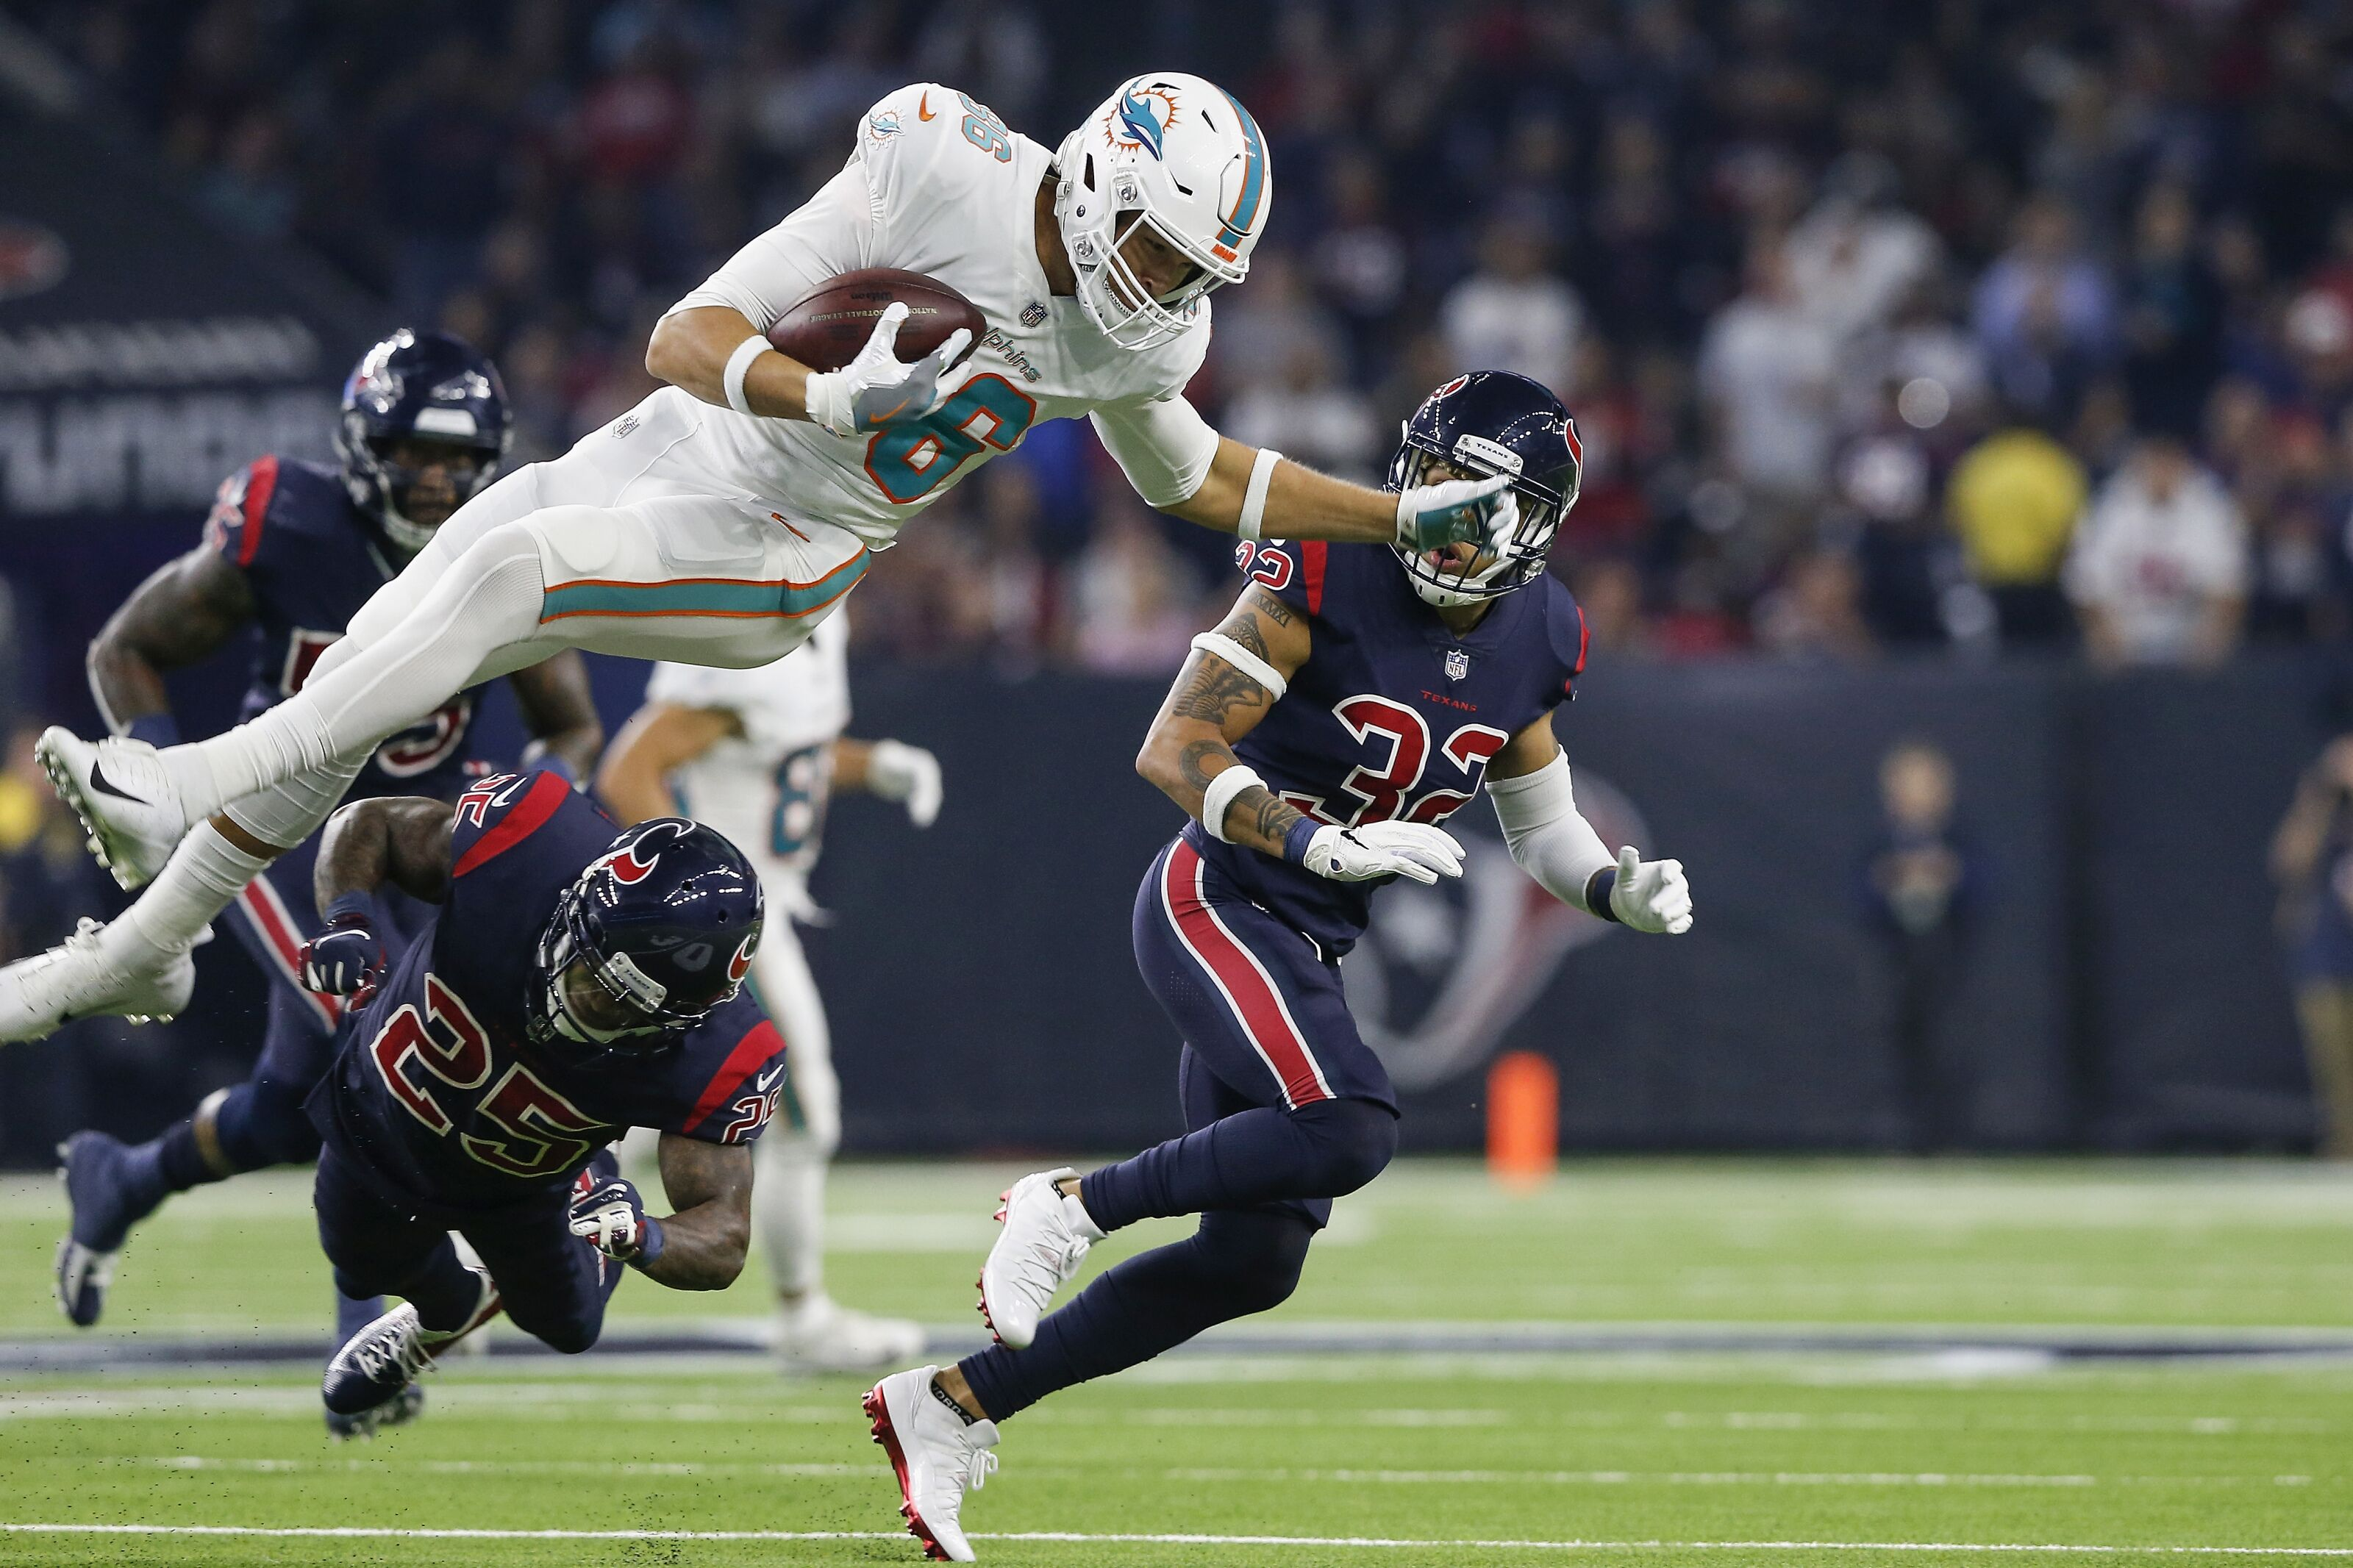 Mike Gesicki should blossom under new coaching staff